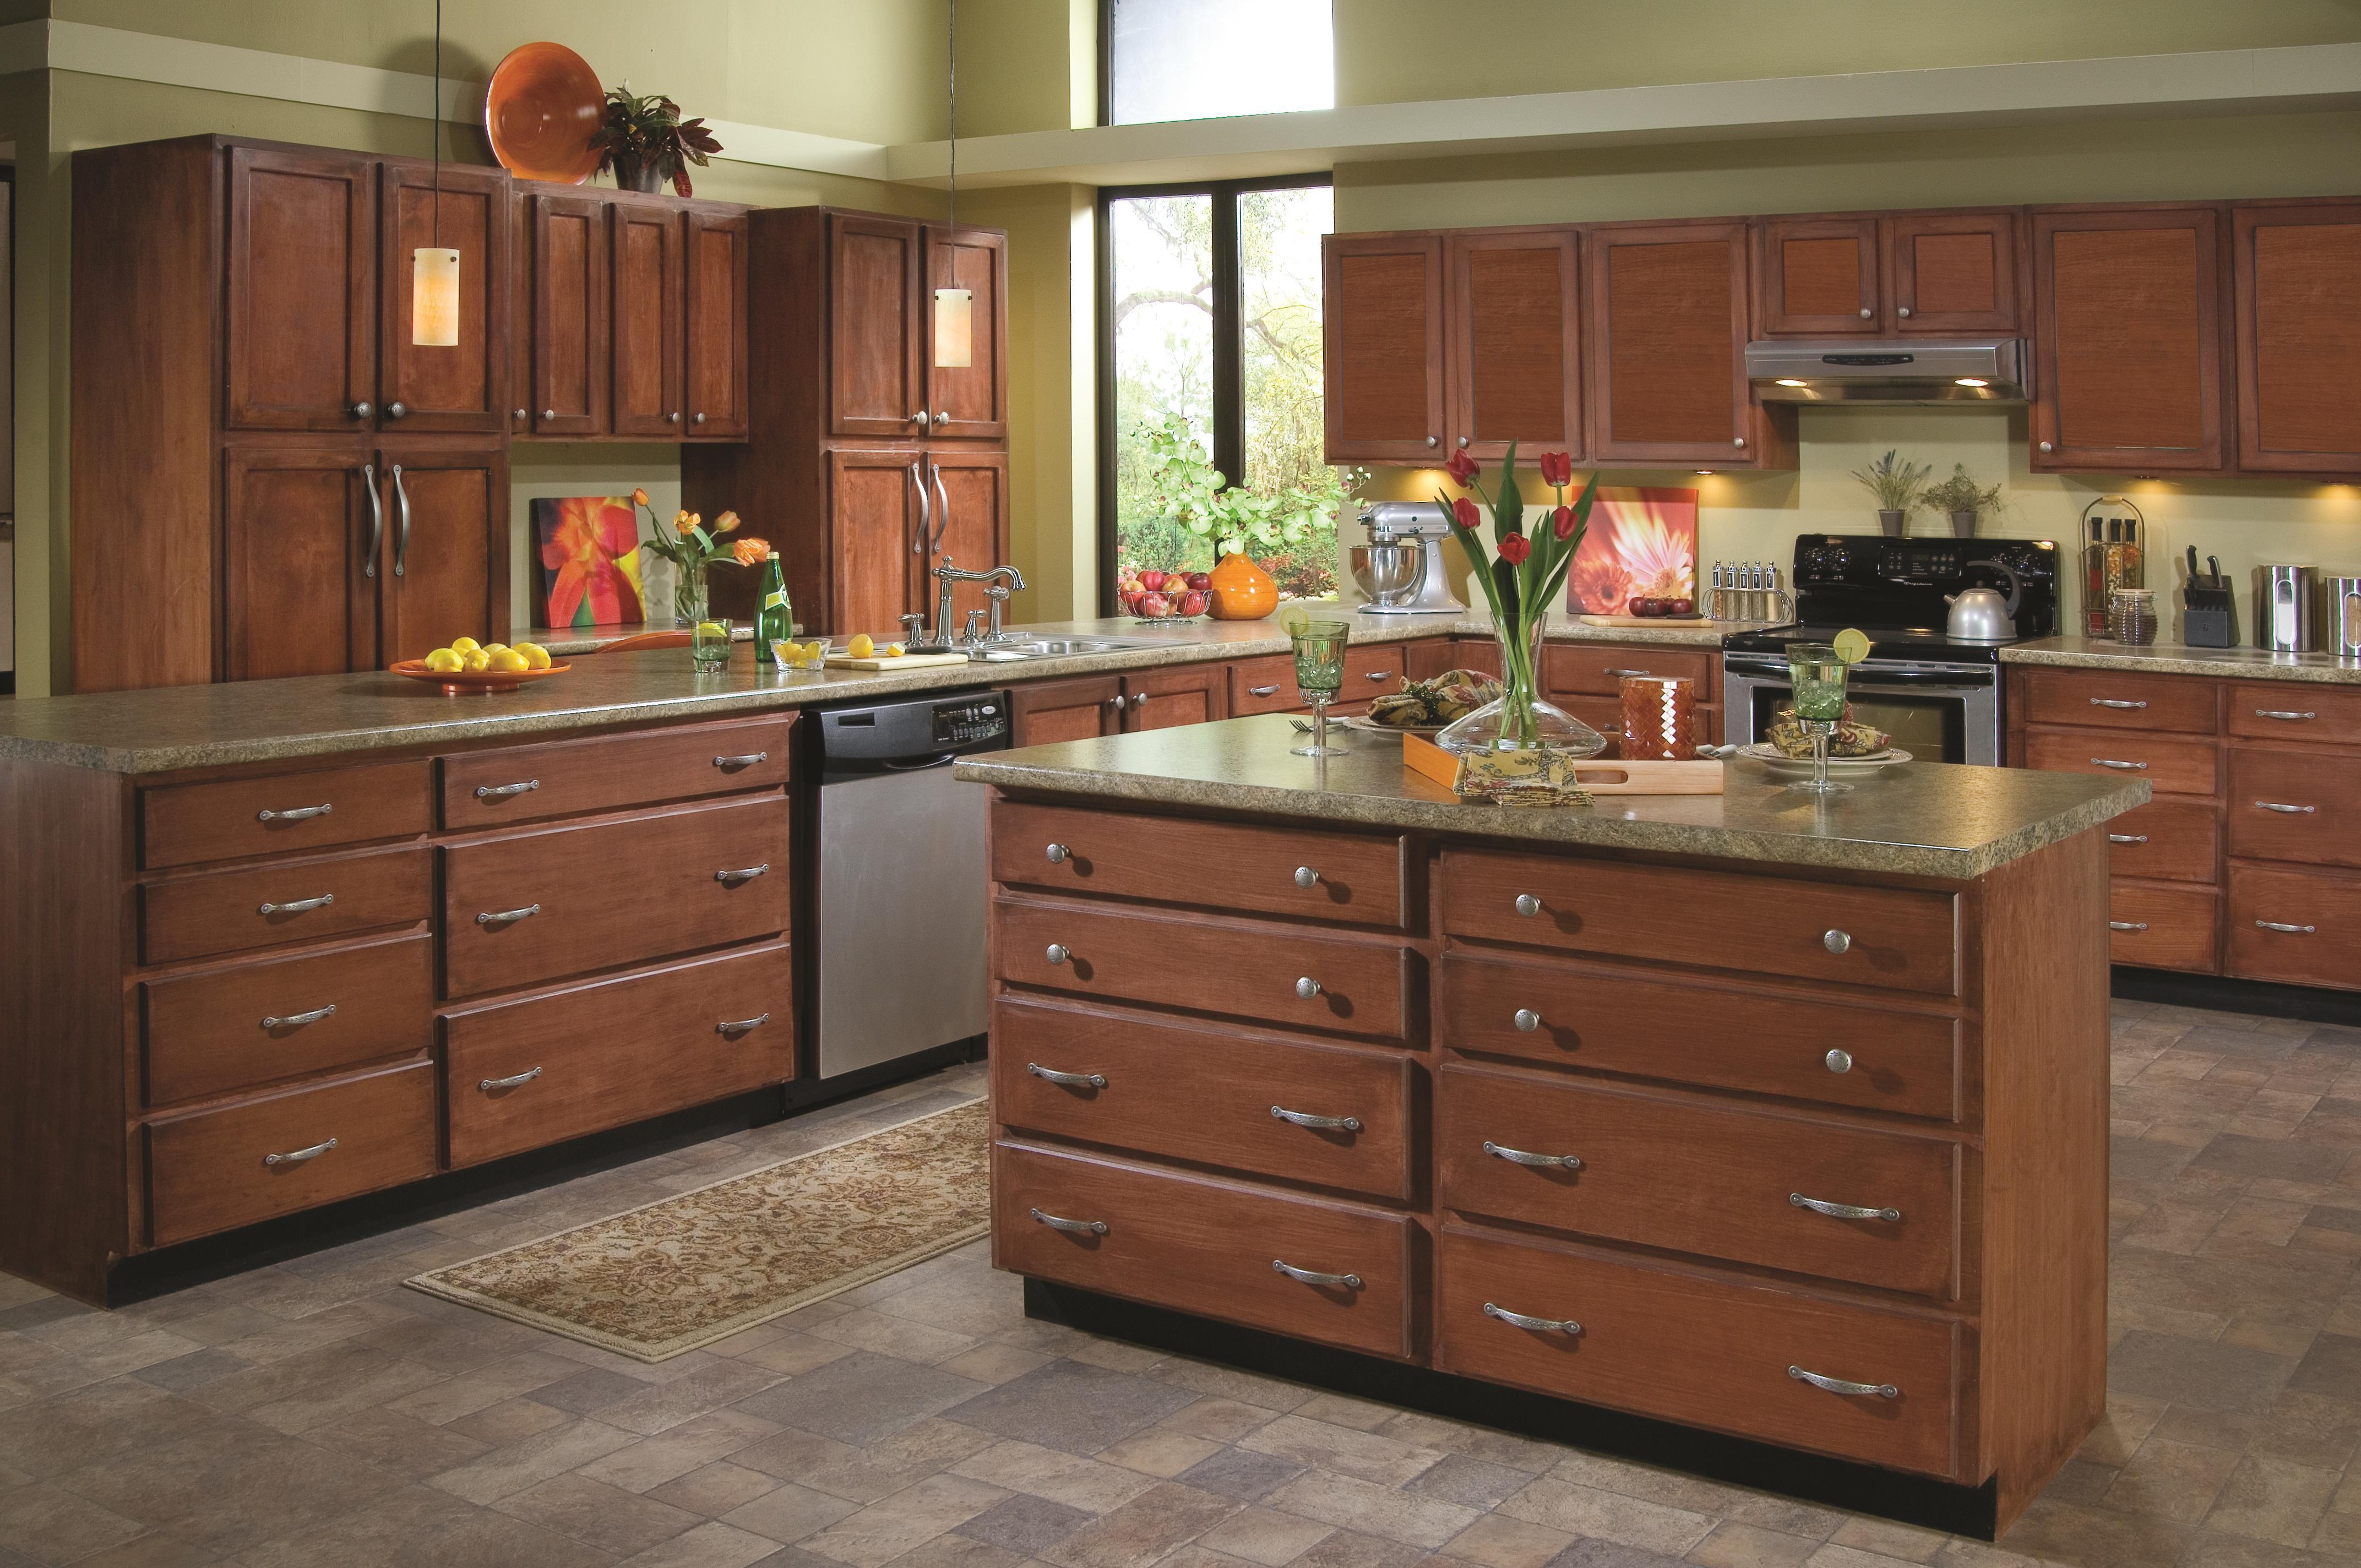 amerock cabinet hardware gives you the power to showcase your personal style and transform your space view larger